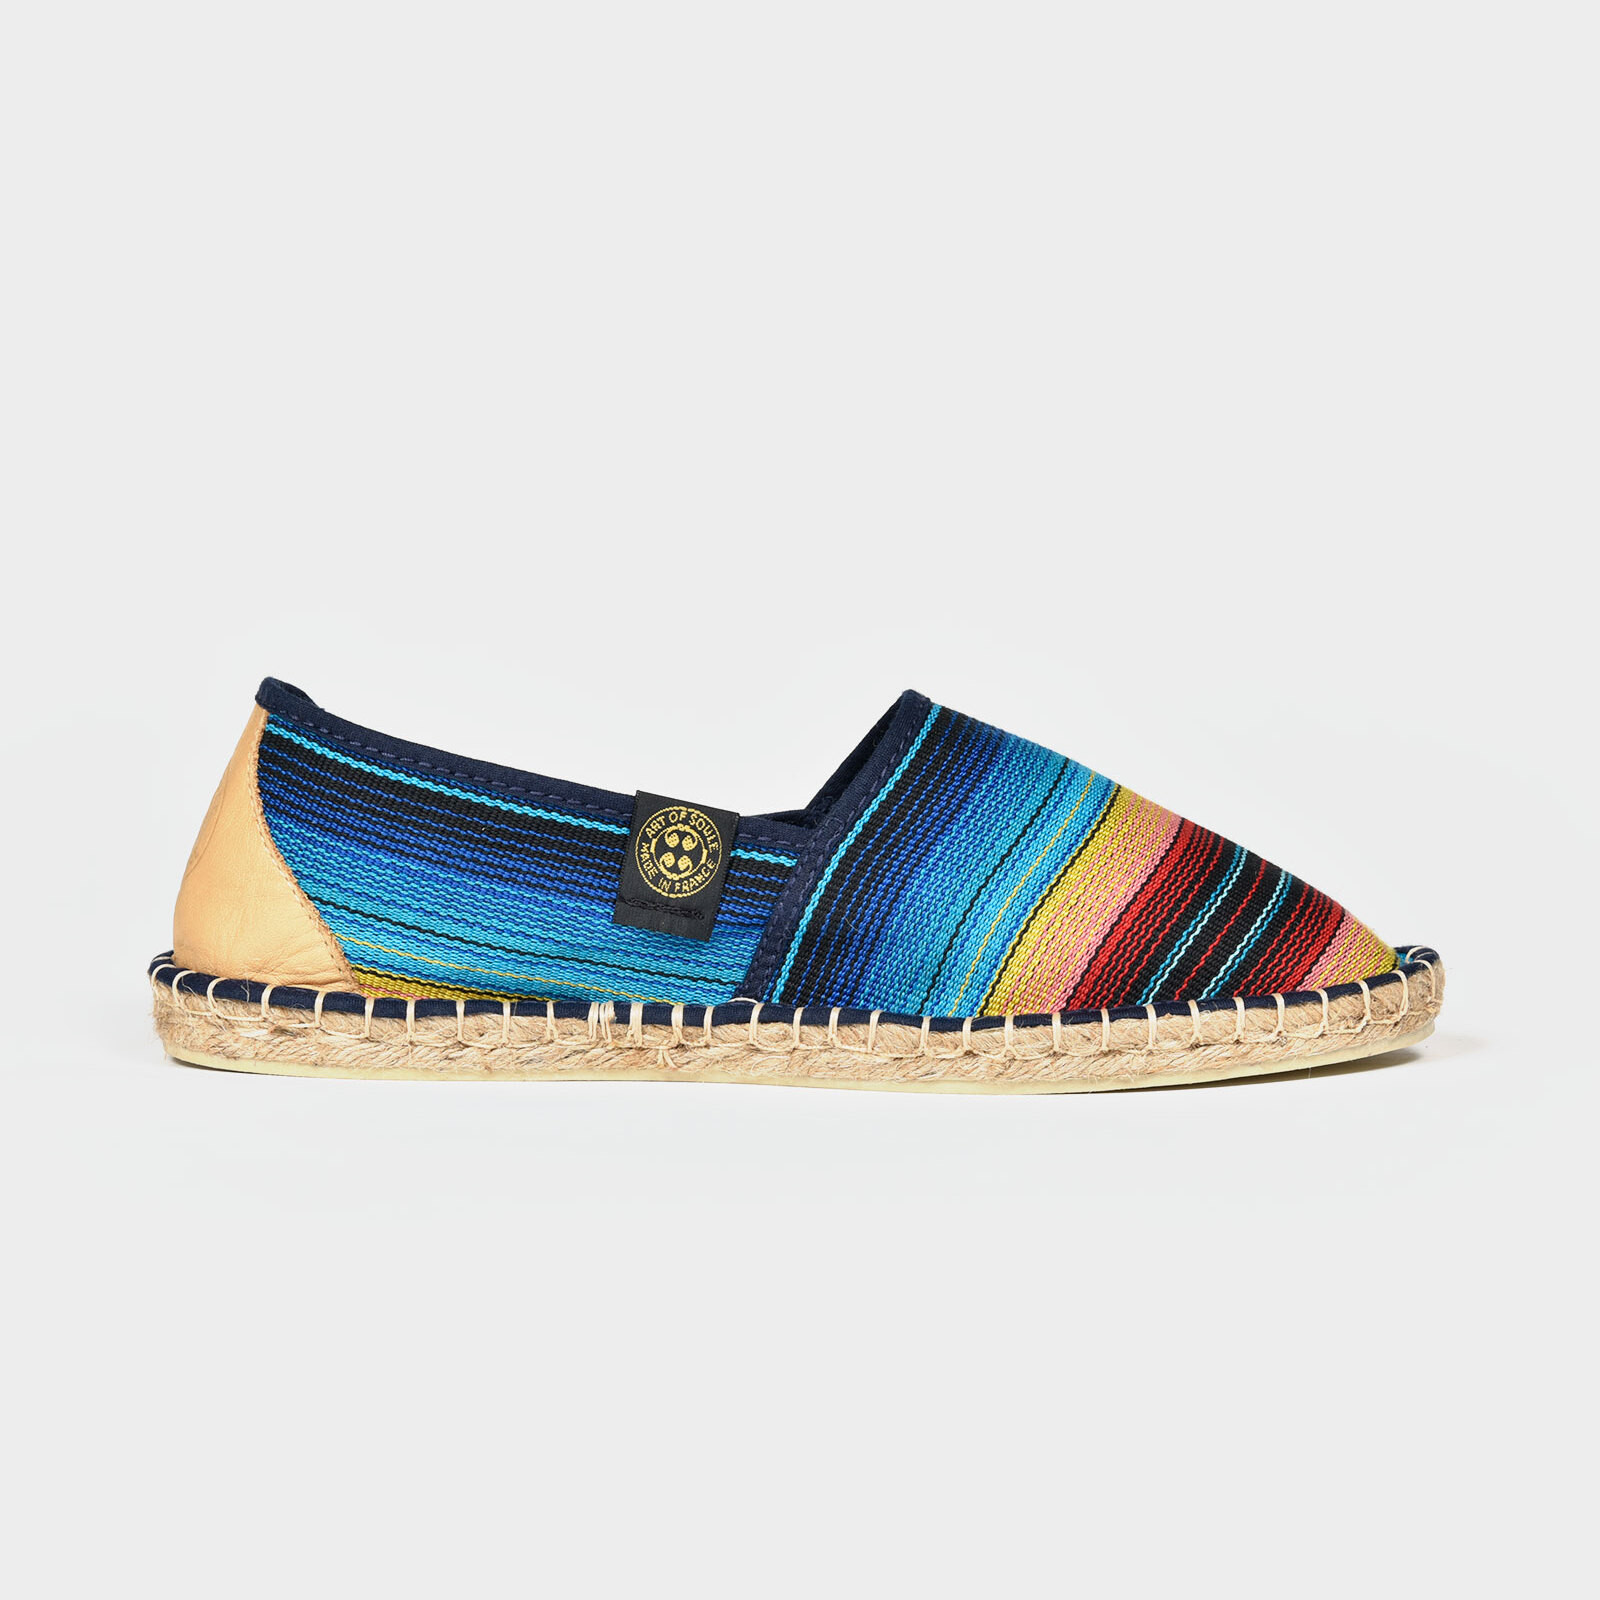 Espadrille Tequila cuir